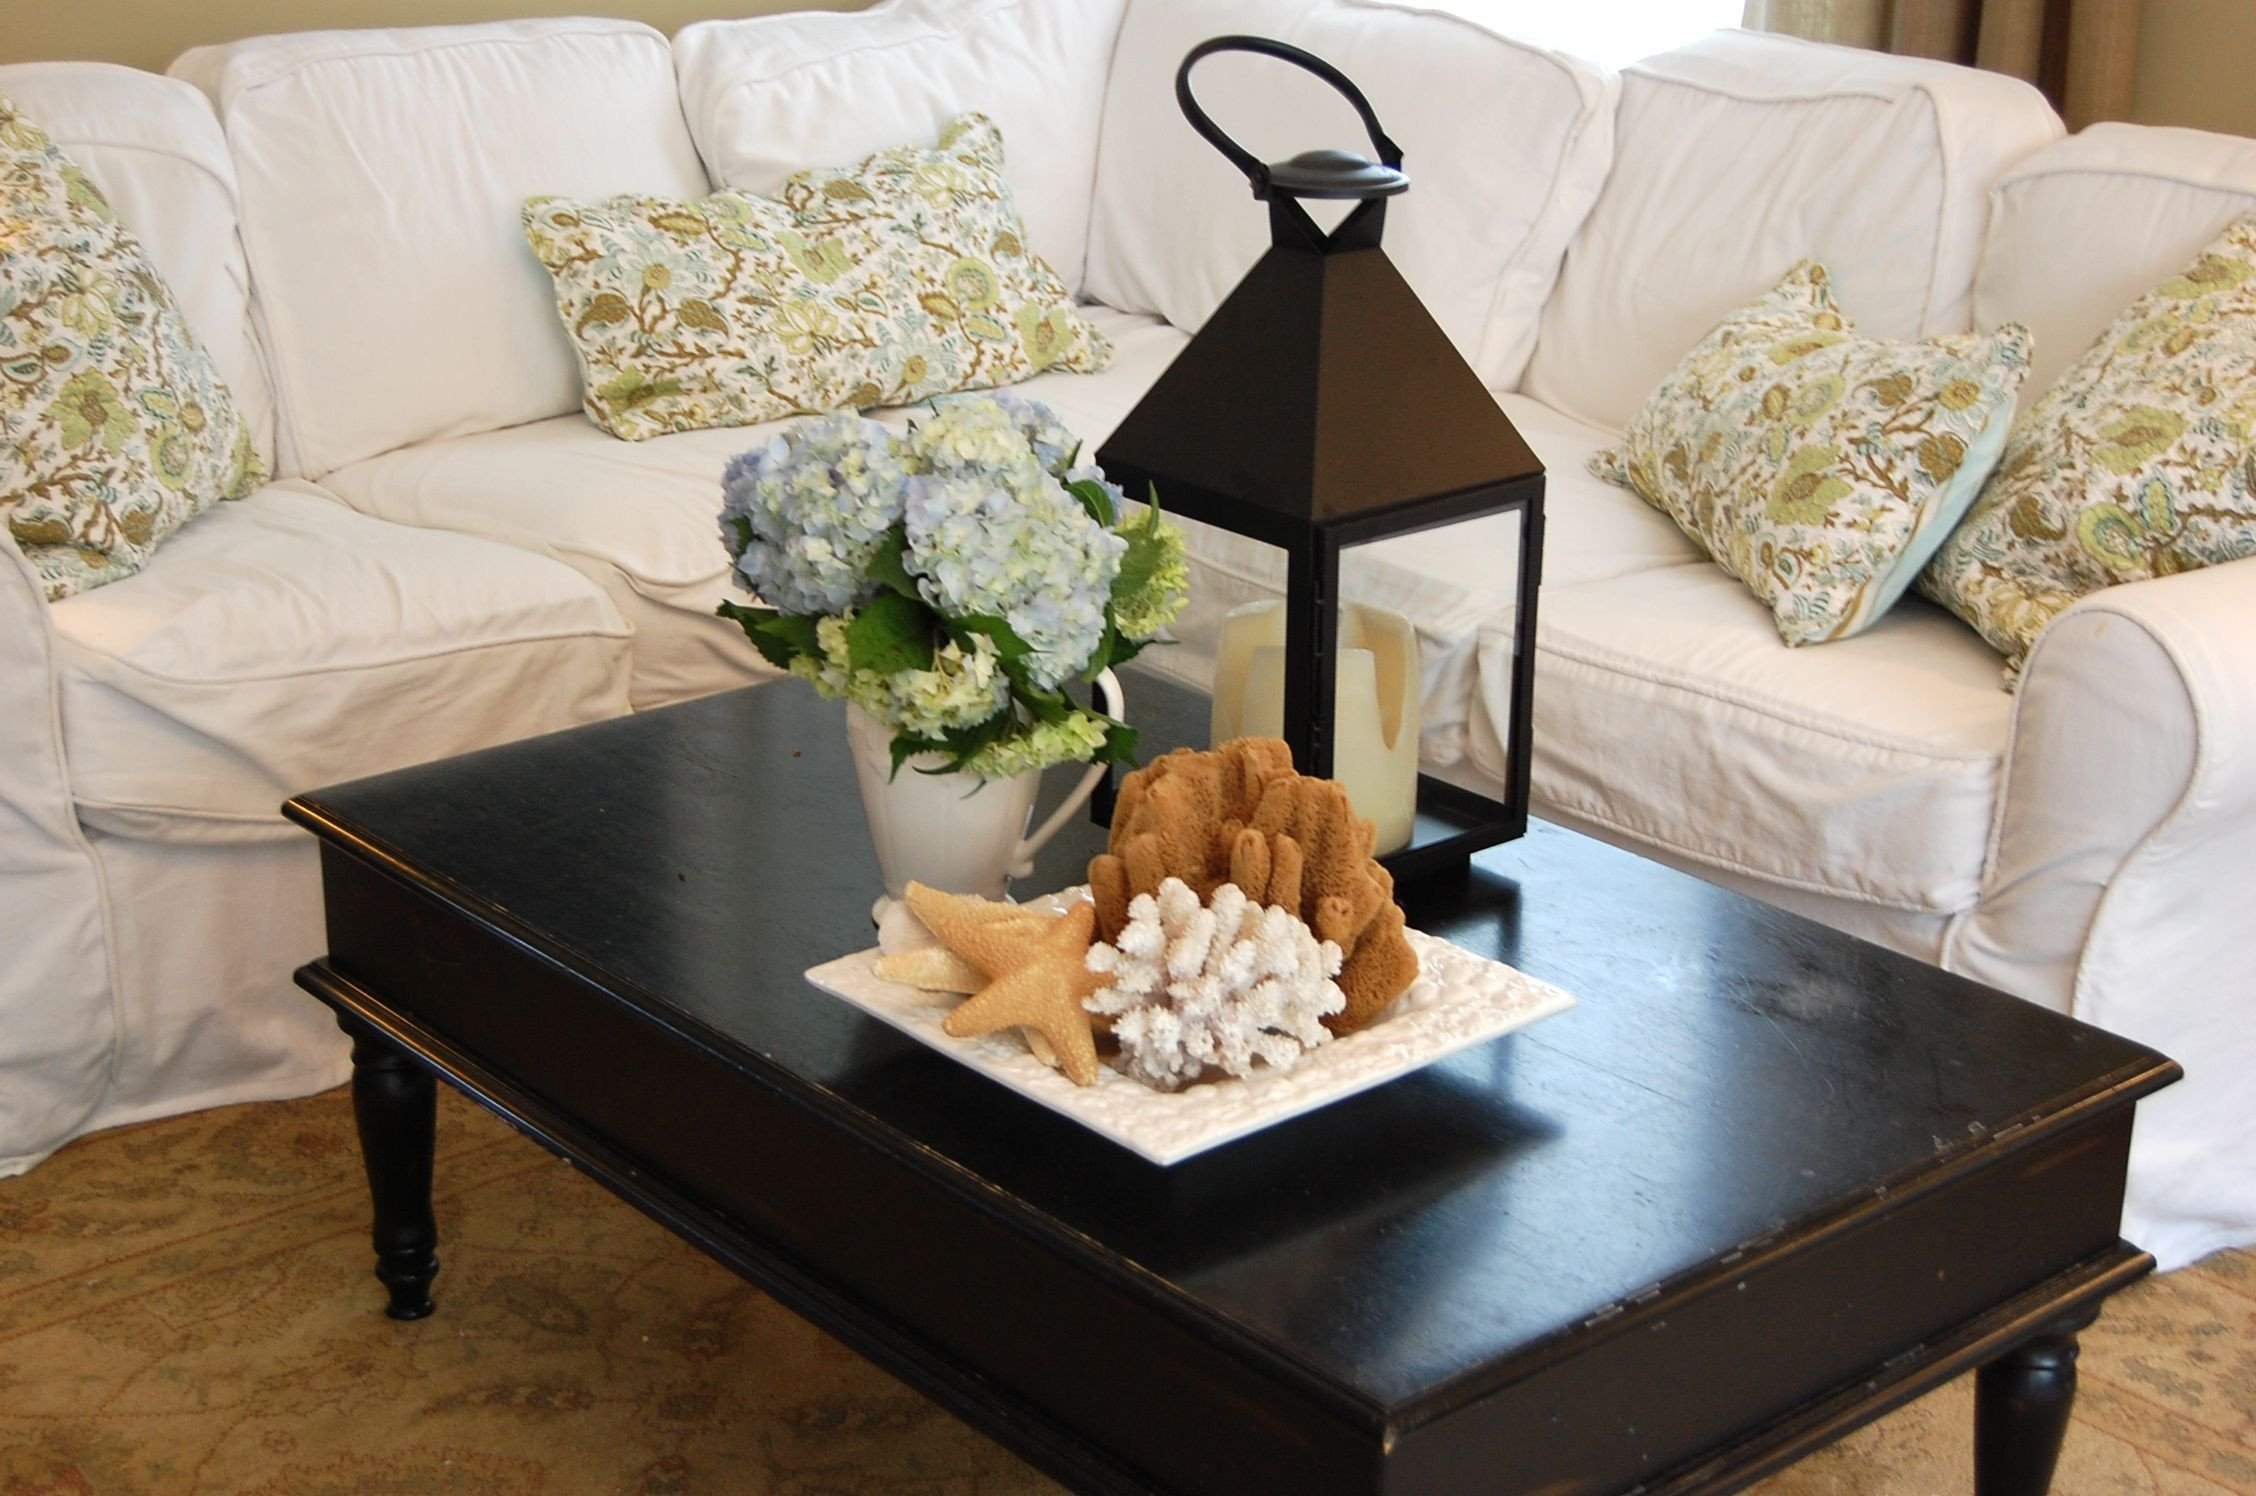 Living Room End Table Decor Inspirational Coffee Table Decor On Pinterest